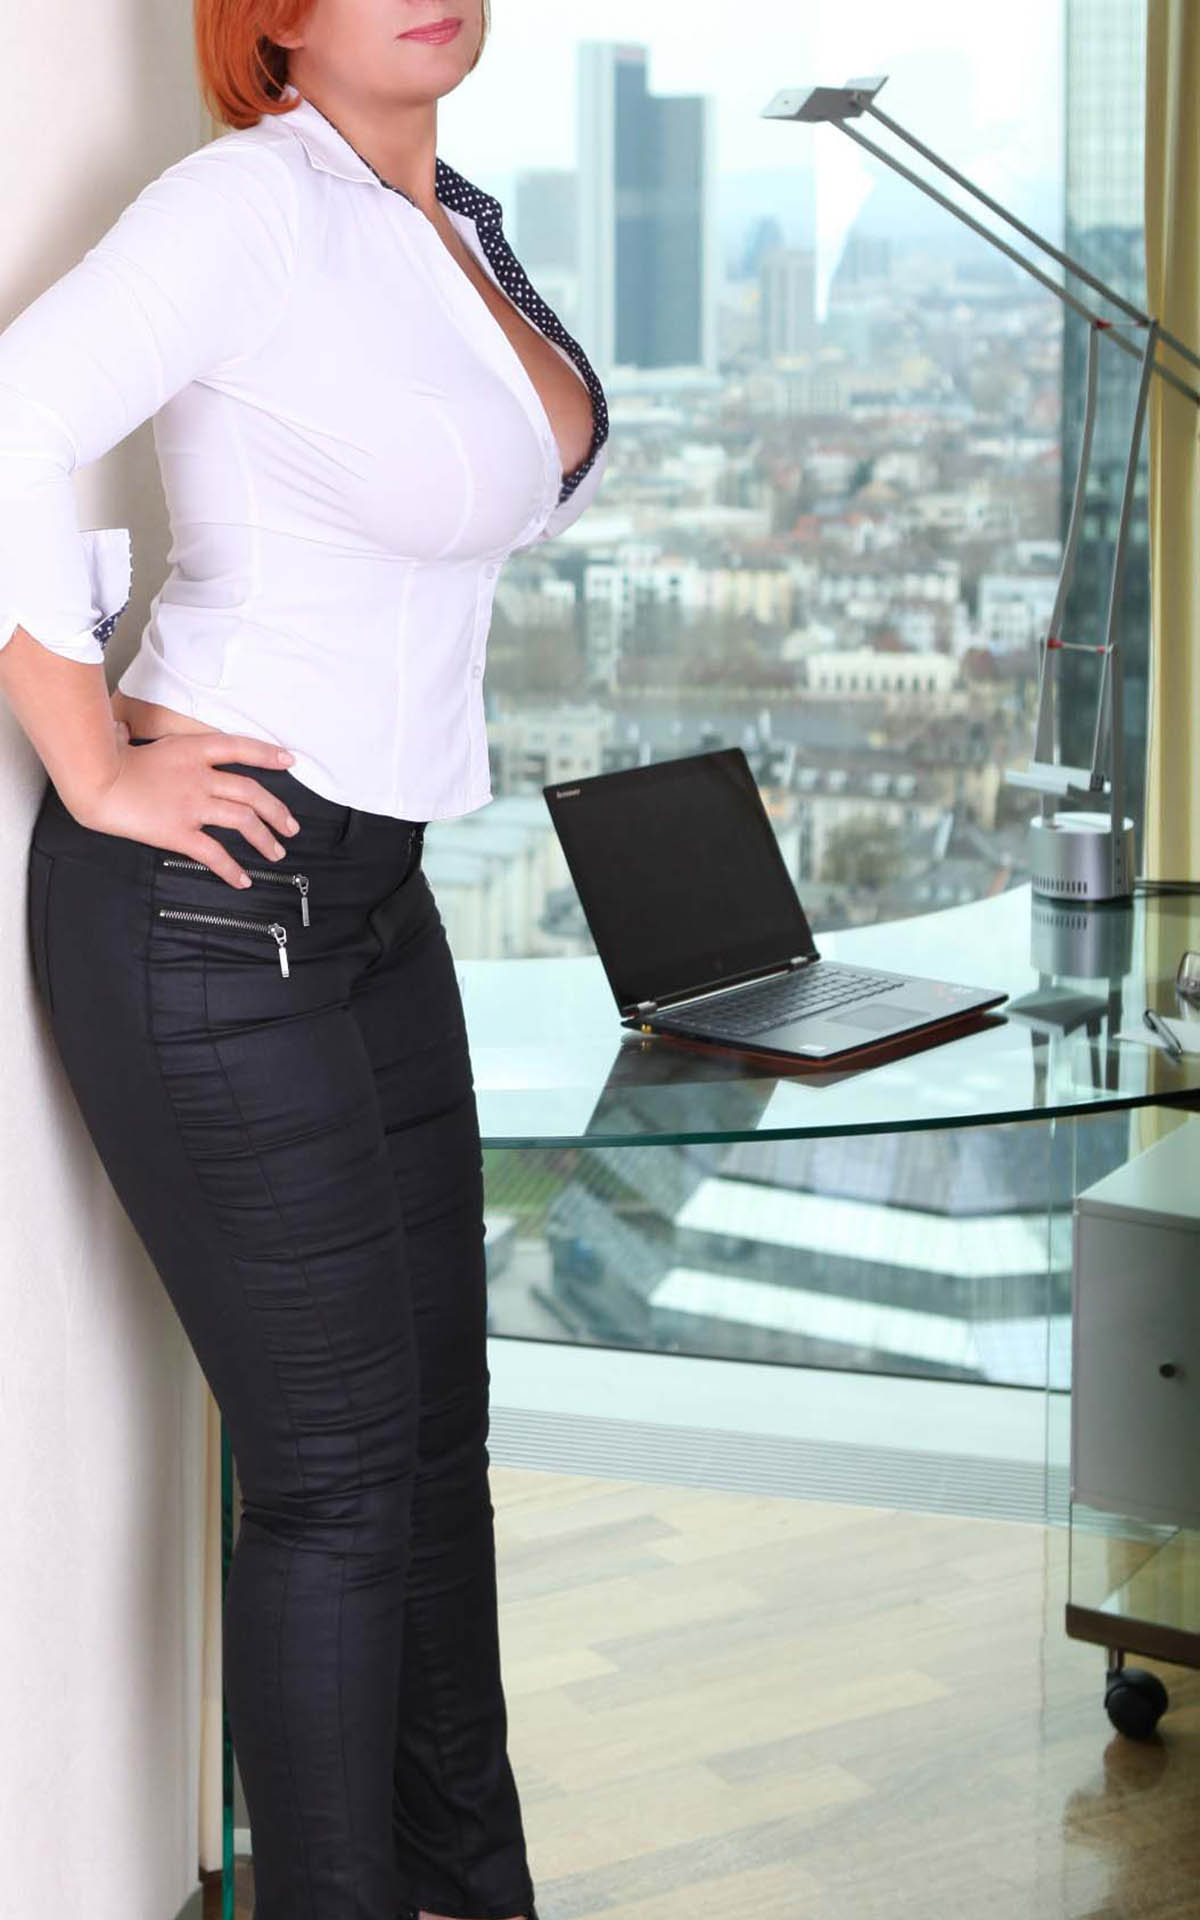 Sofia high class escort service BBW wit a large bust in the generous cleavage